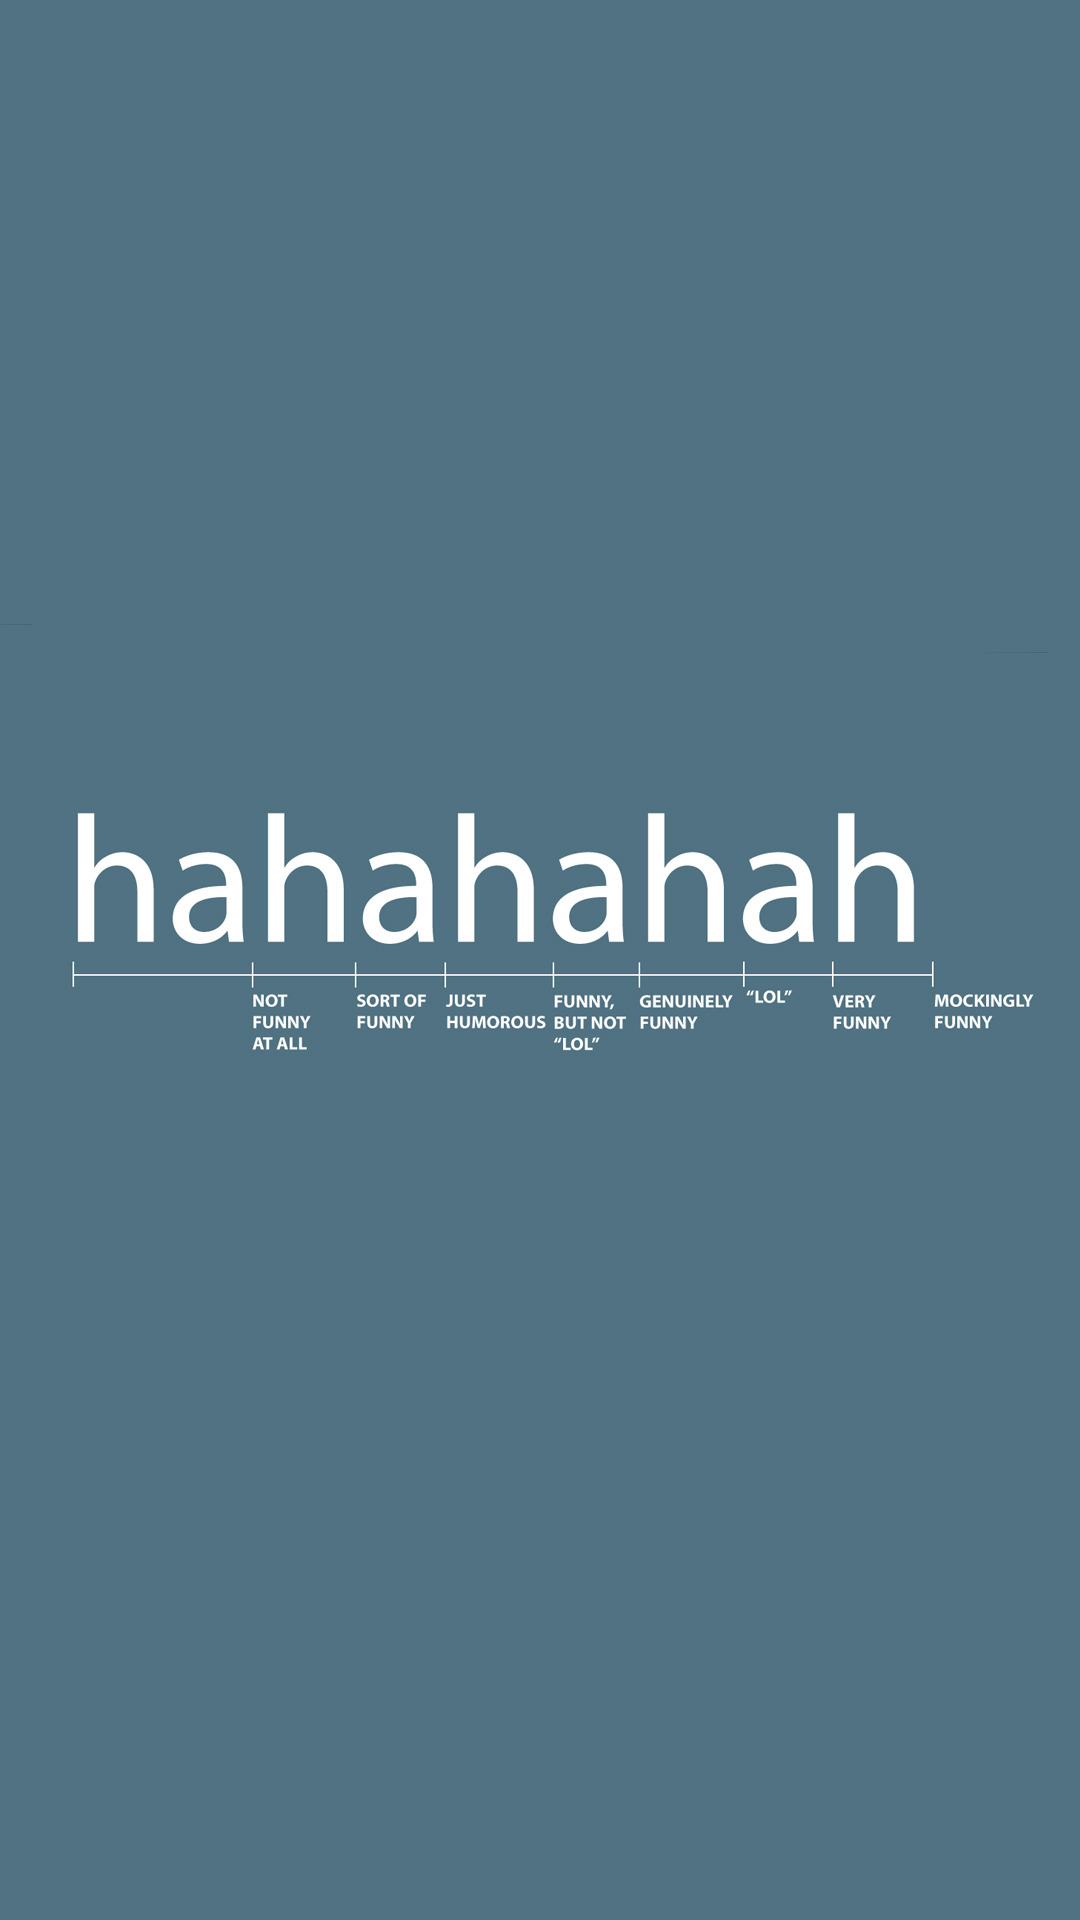 How-do-you-rate-us-hahahahahahahahahahahahahahahahahaha-P-Funny-quote-iPhone-mobile-wallpaper-wp5207610